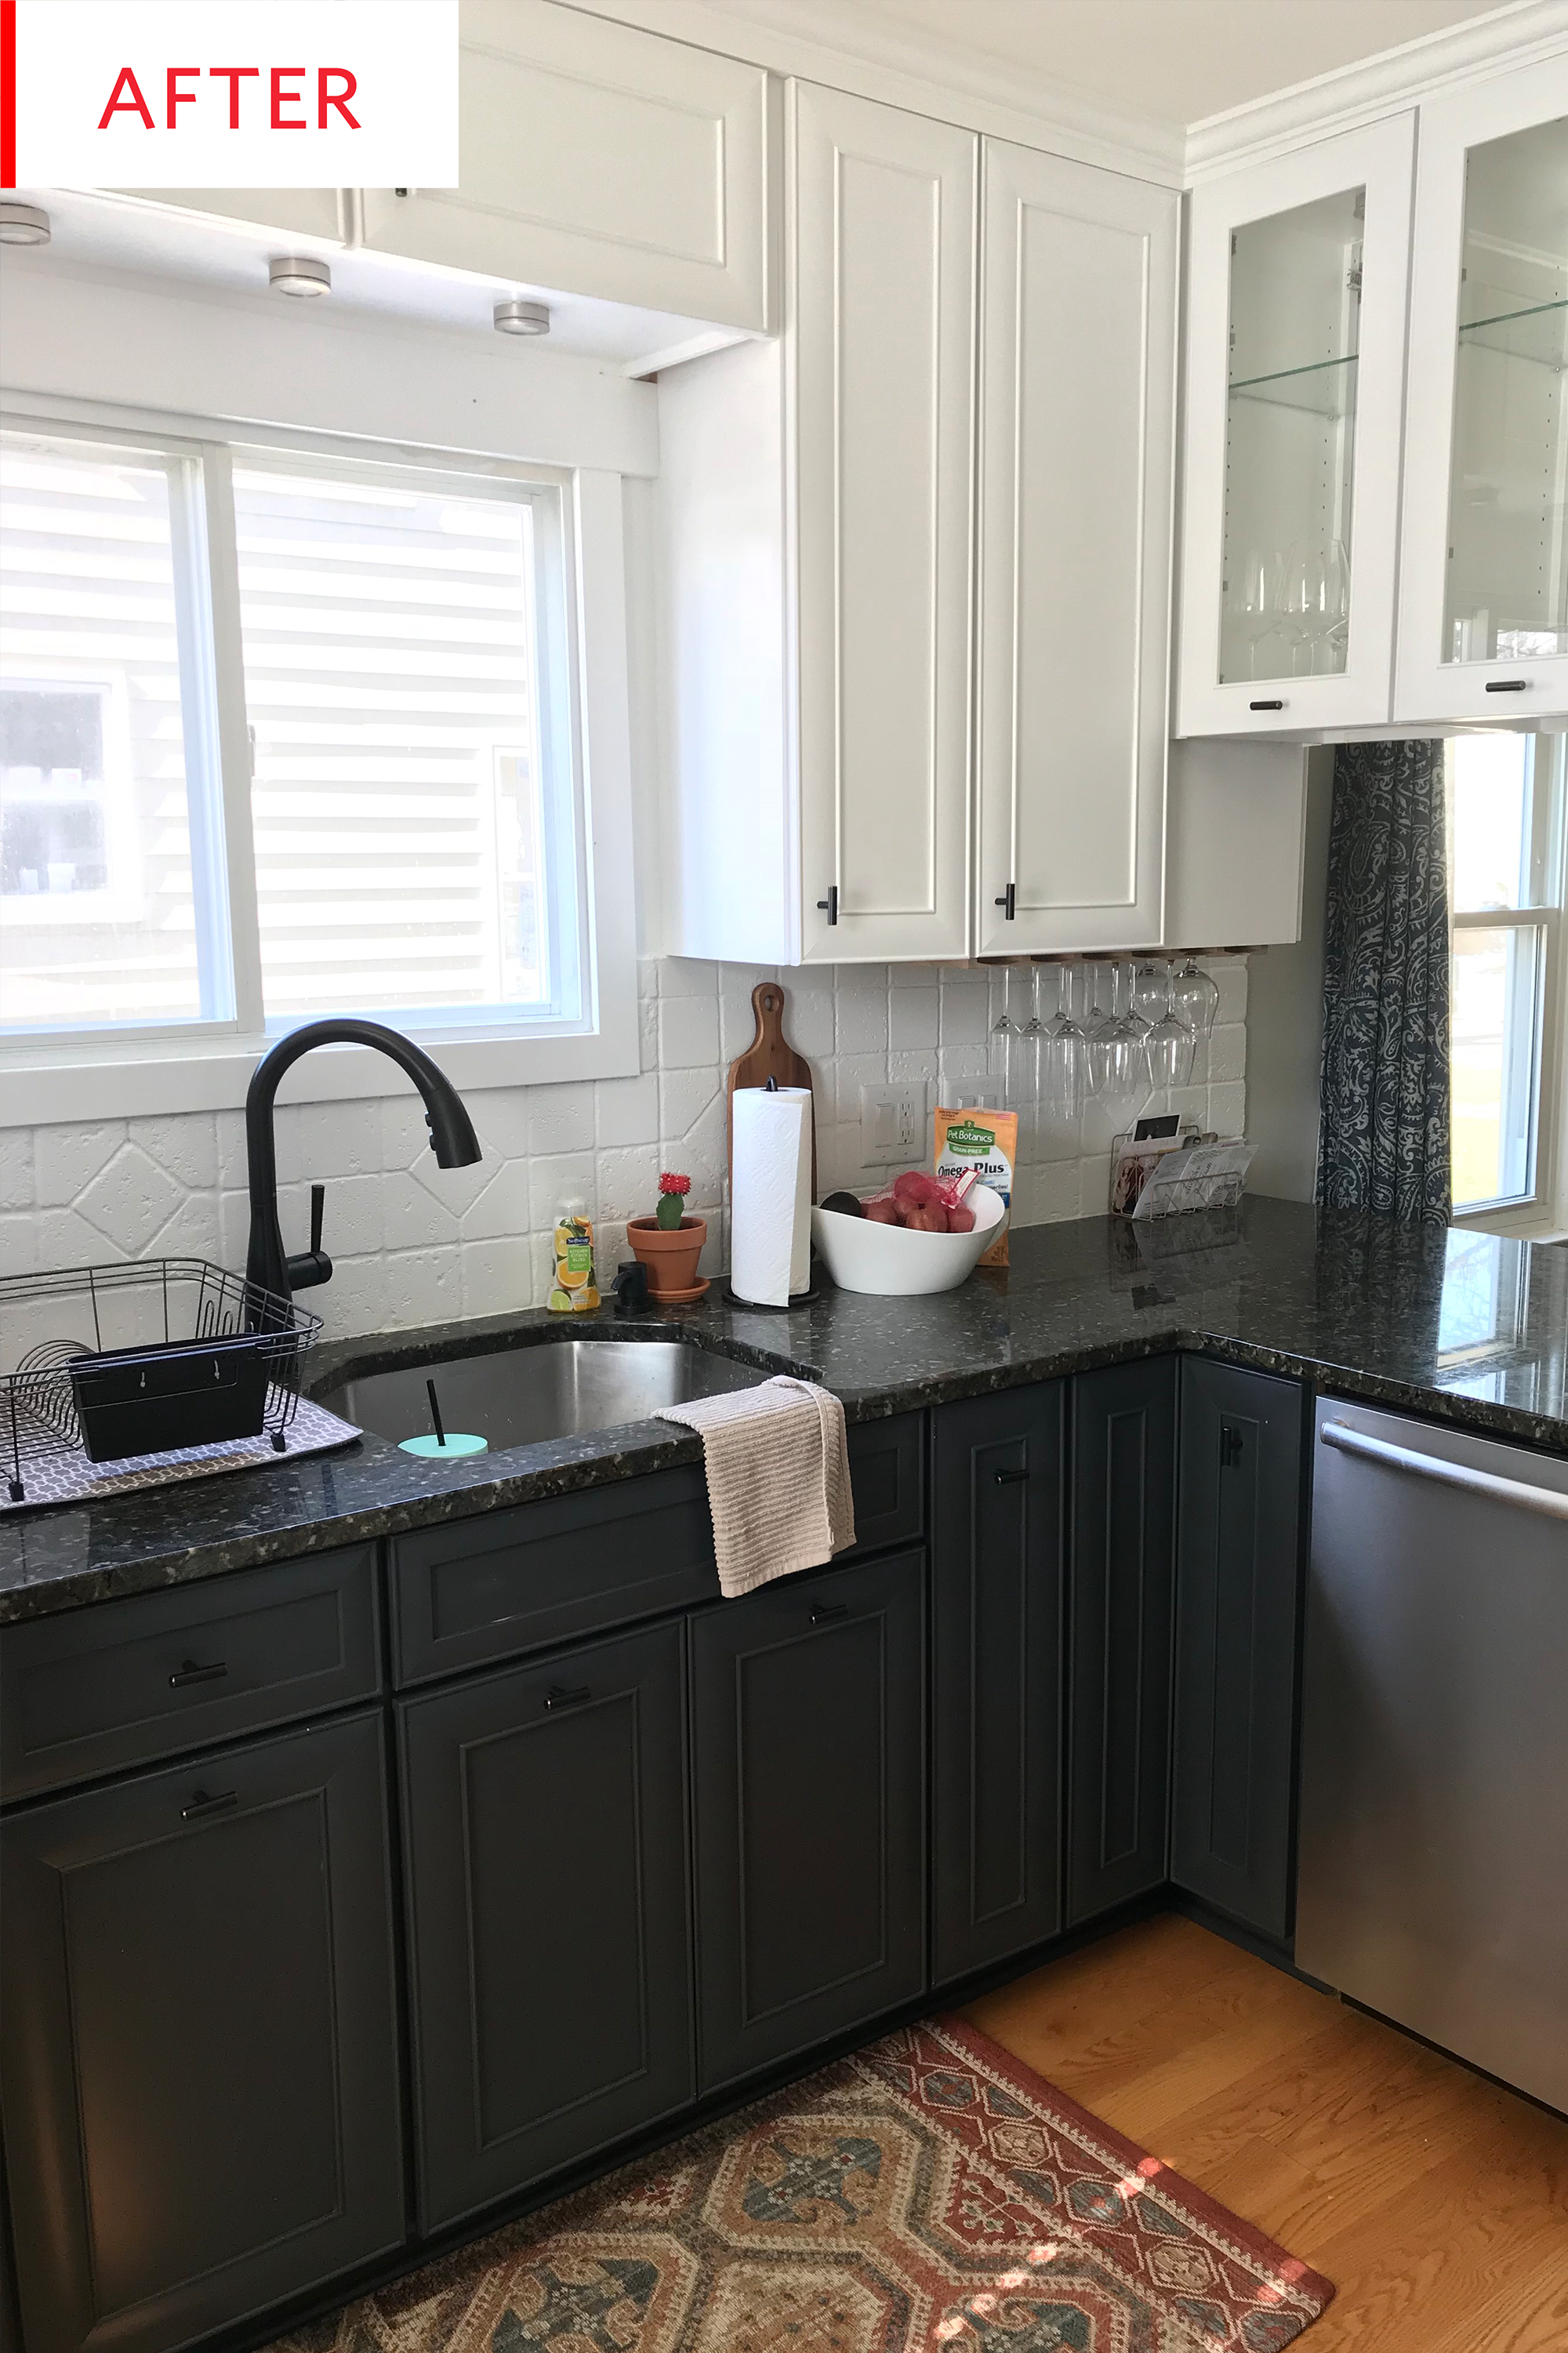 Kitchen Facelift Island Bar Before And After A Three Week 500 Design